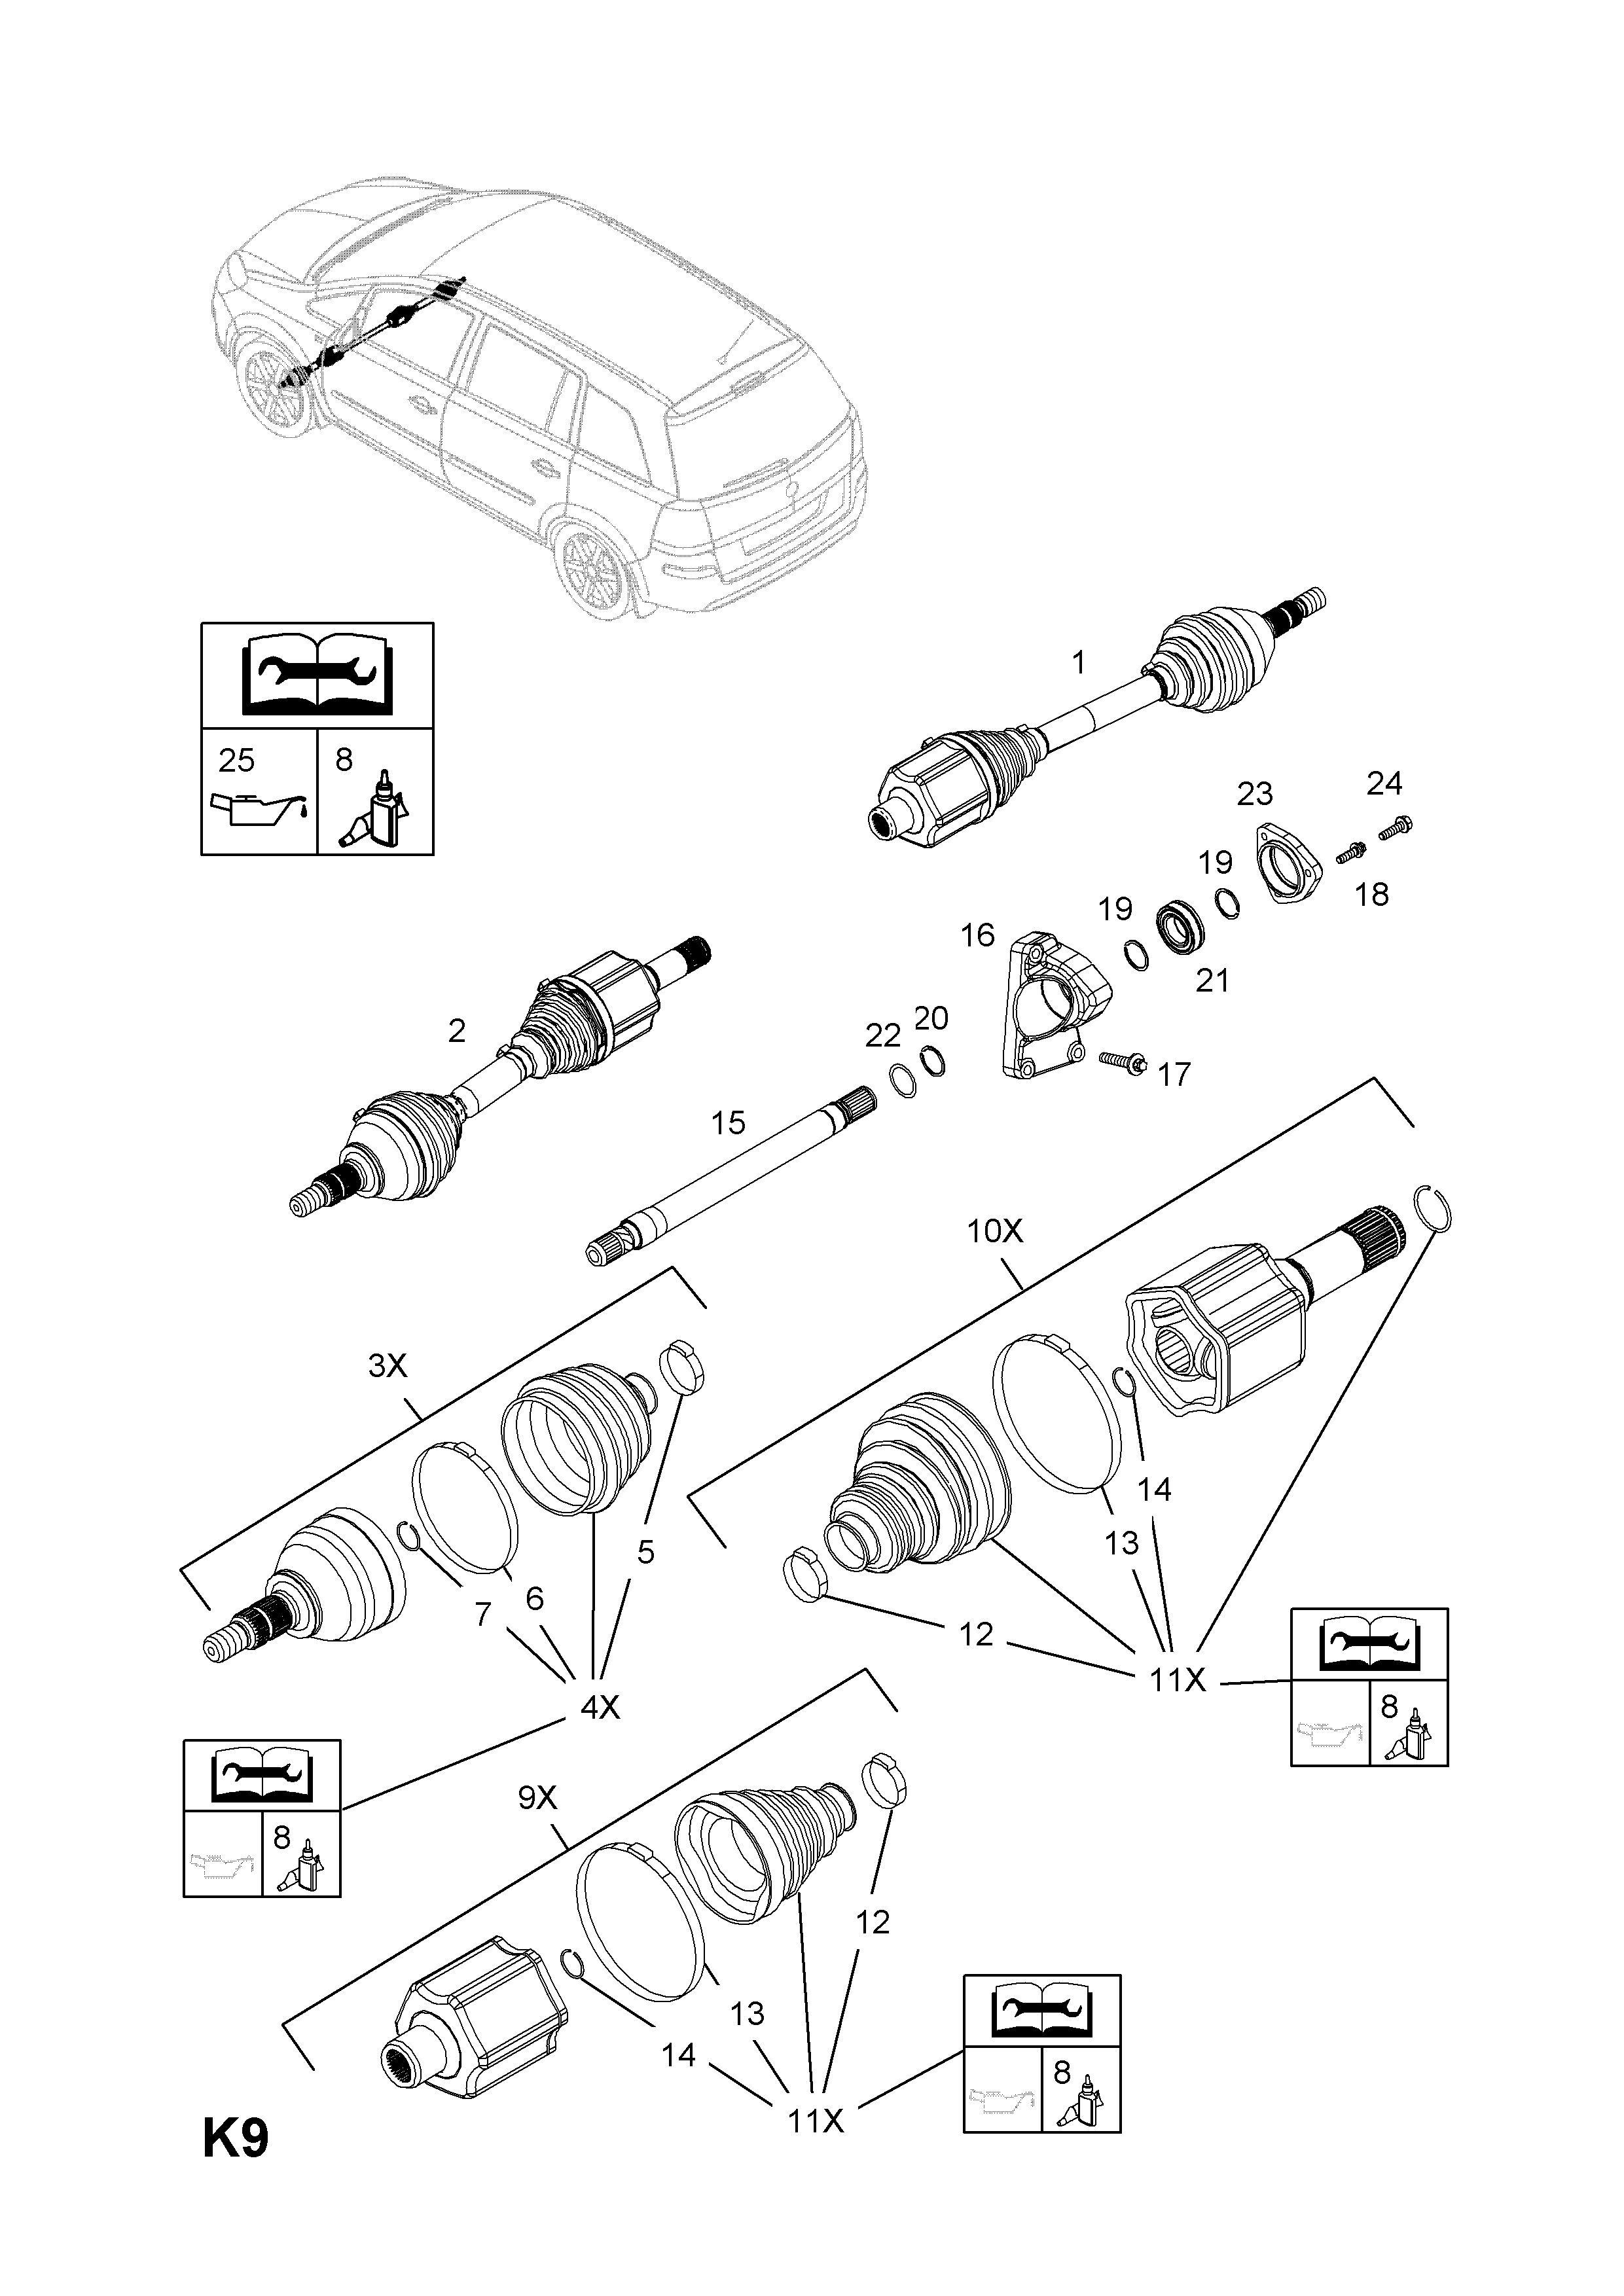 Opel Zafira B 2005 K Front Axle And Suspension 50z19dtllpp Diesel Engine Fuel System Diagram List Of Parts